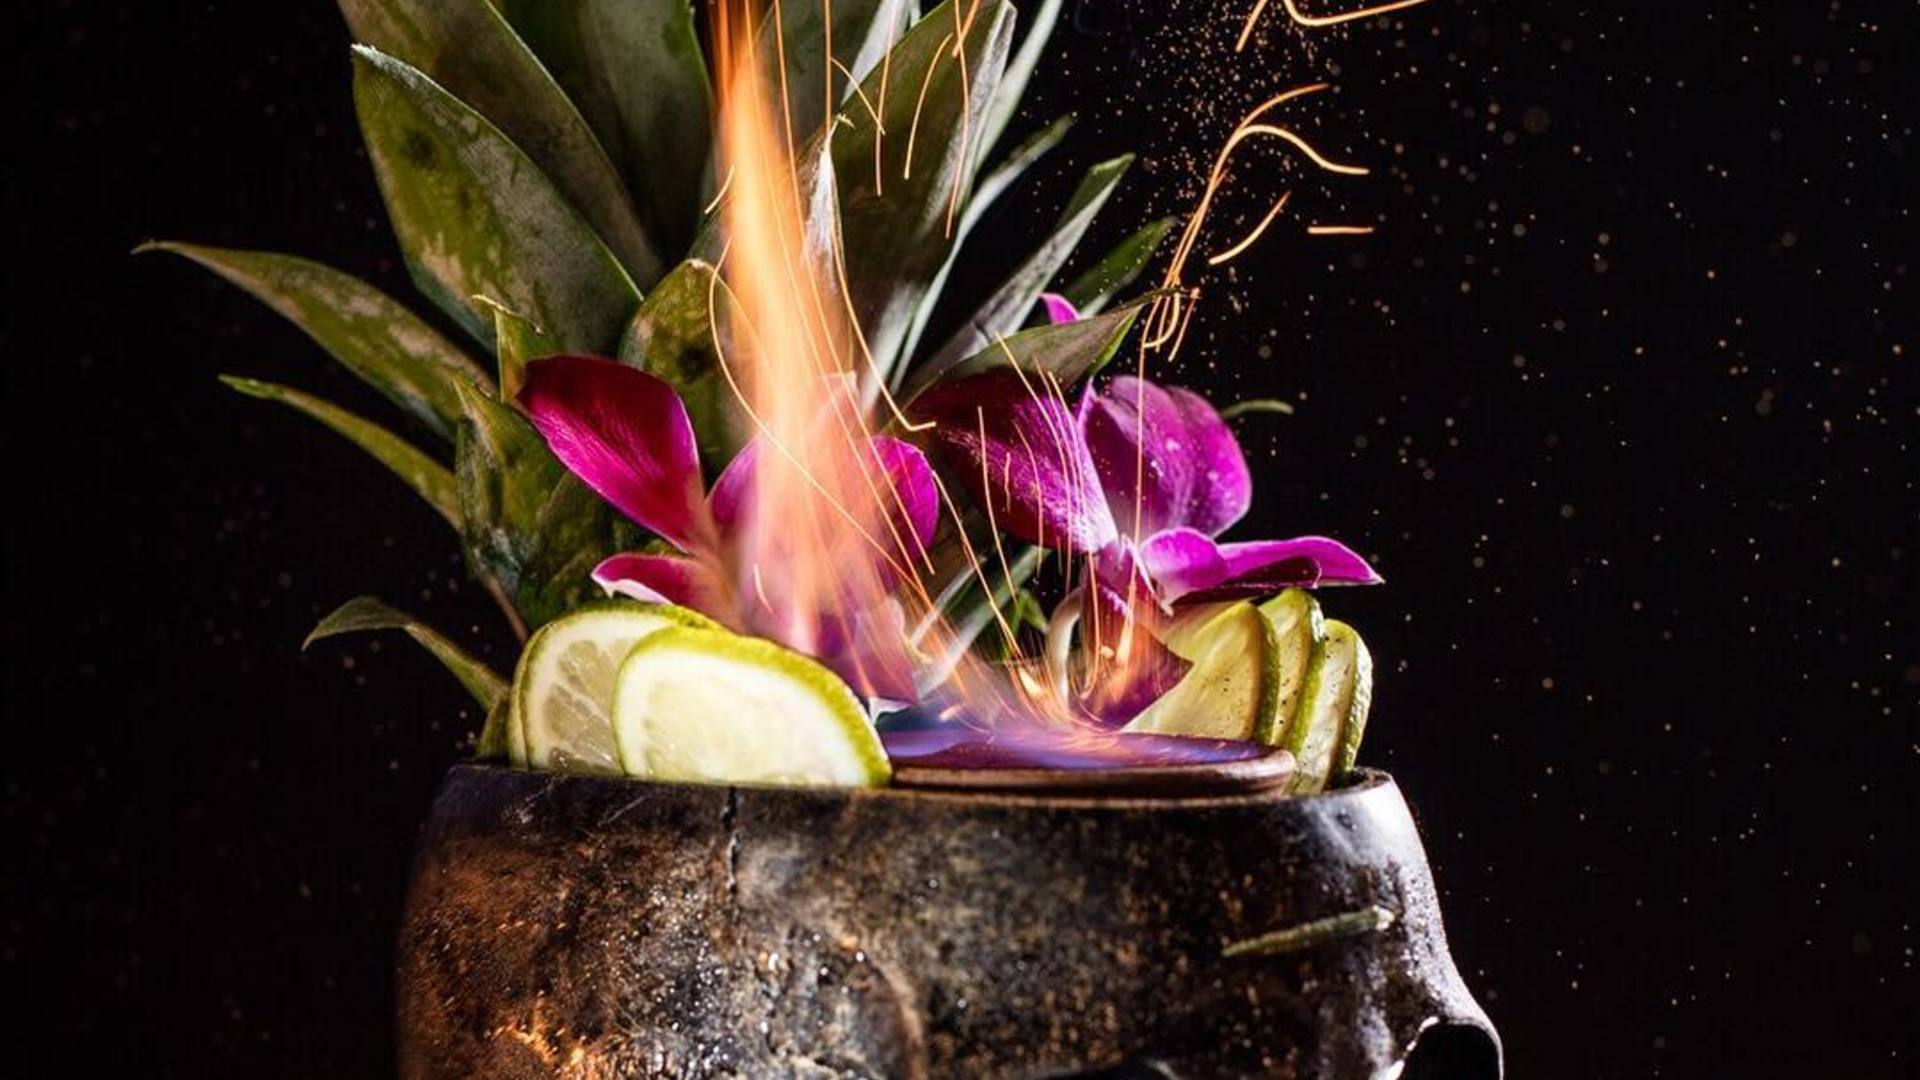 7 Of The Most Creative Cocktails You've Ever Seen